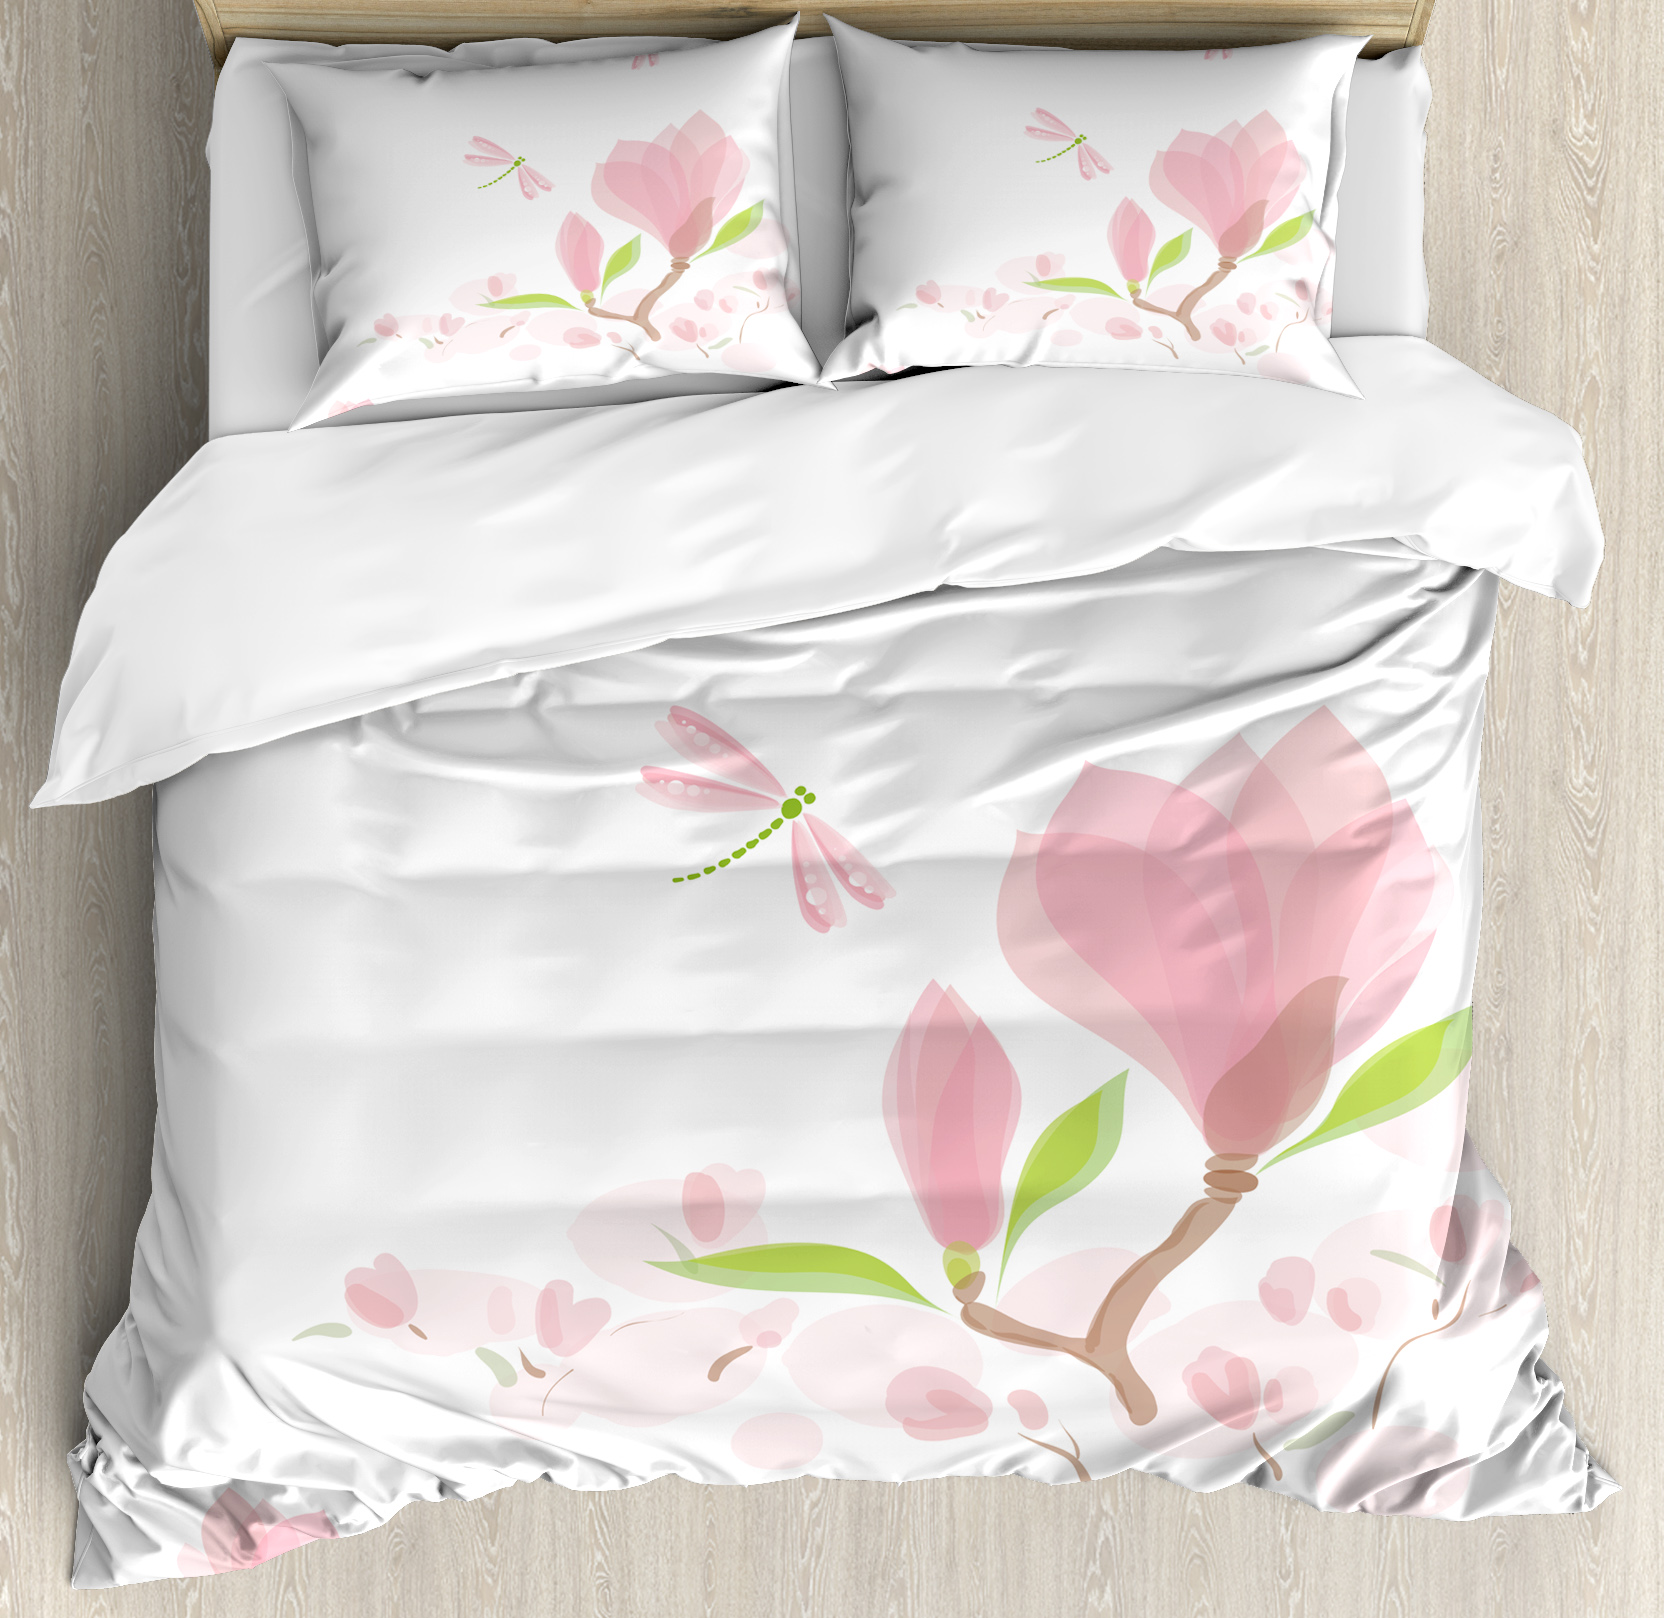 Dragonfly King Size Duvet Cover Set, Magnolia Branches an...